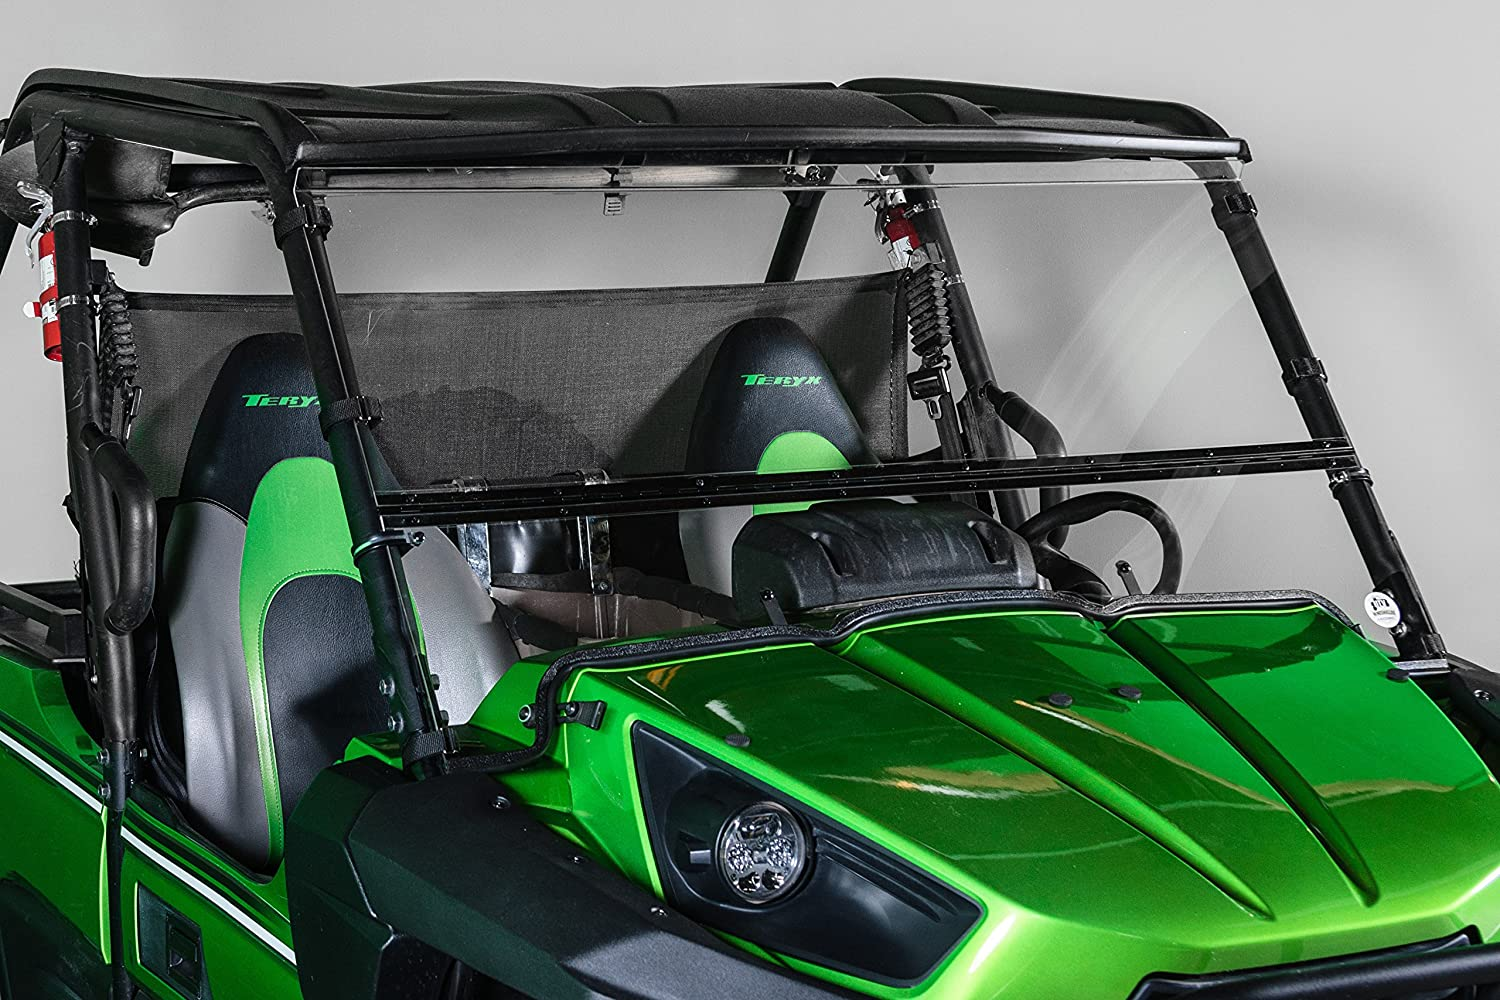 Kawasaki Teryx Full Tilting Utv Windshield Only Fits 2015 Wiring Schematic The 4 Seater 2012 2014 Made In Usa Best Of Both World Half When You Want And